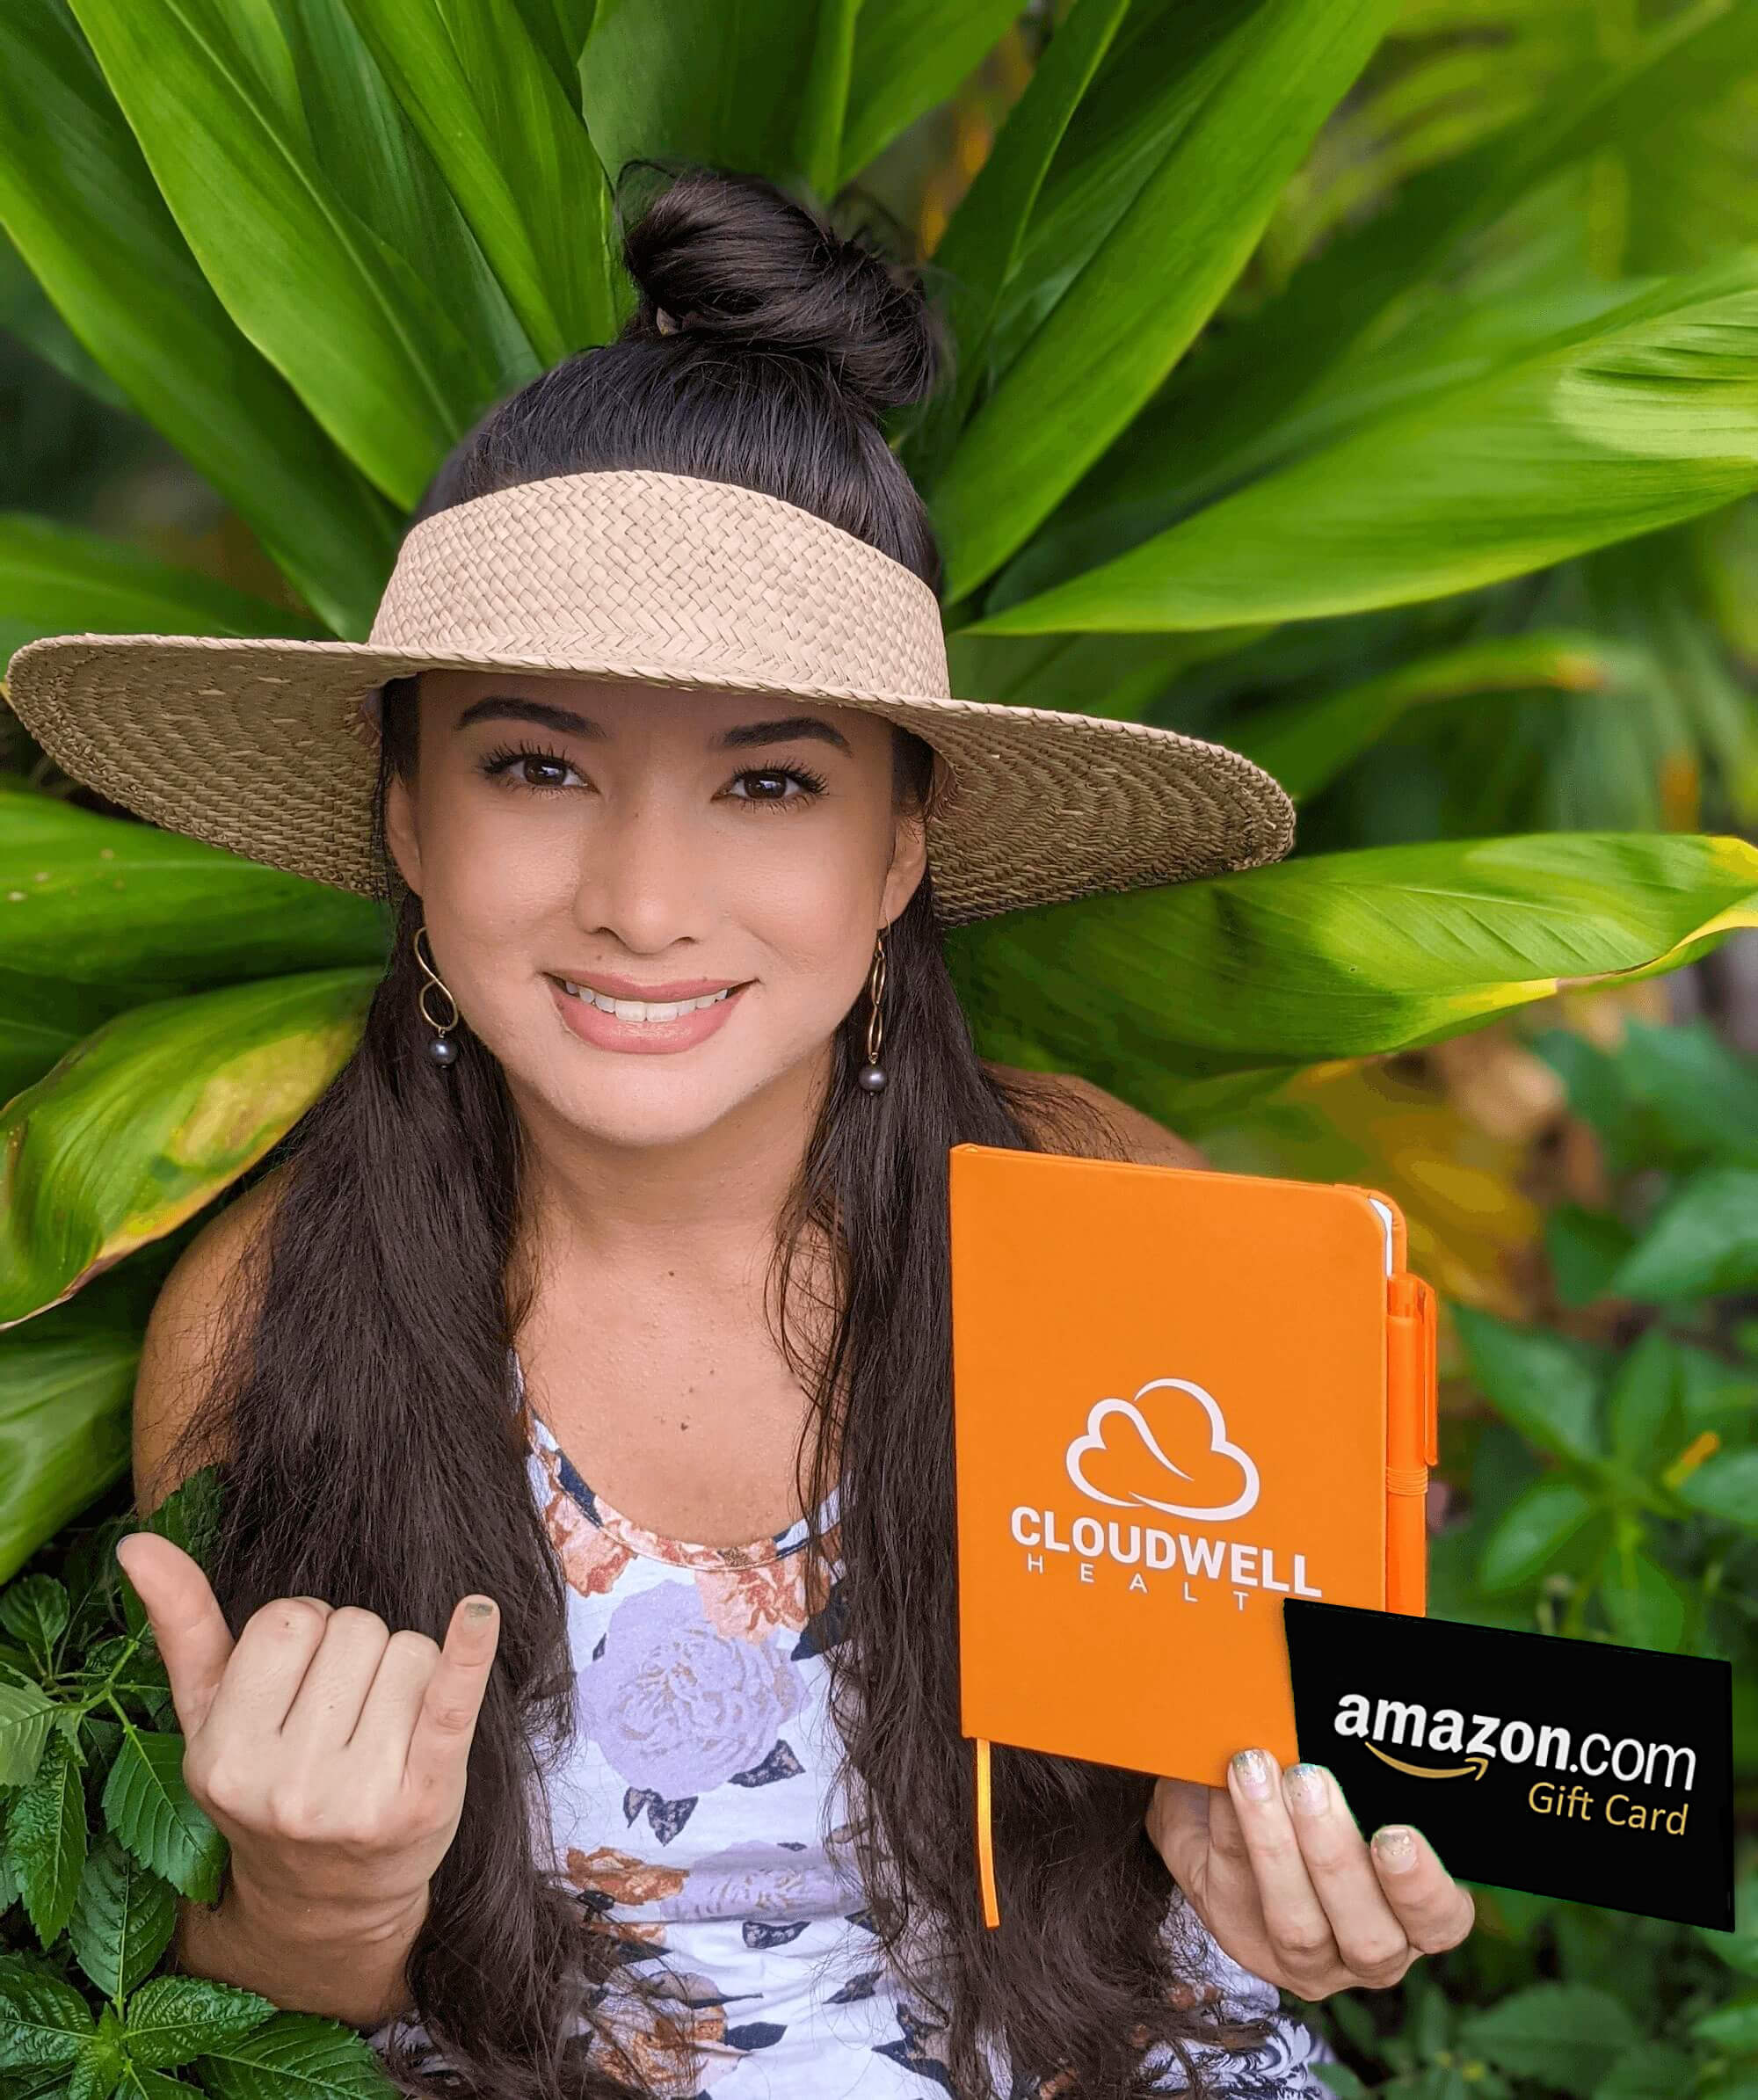 cloudwell-health-referral-amazon-gift-certificate